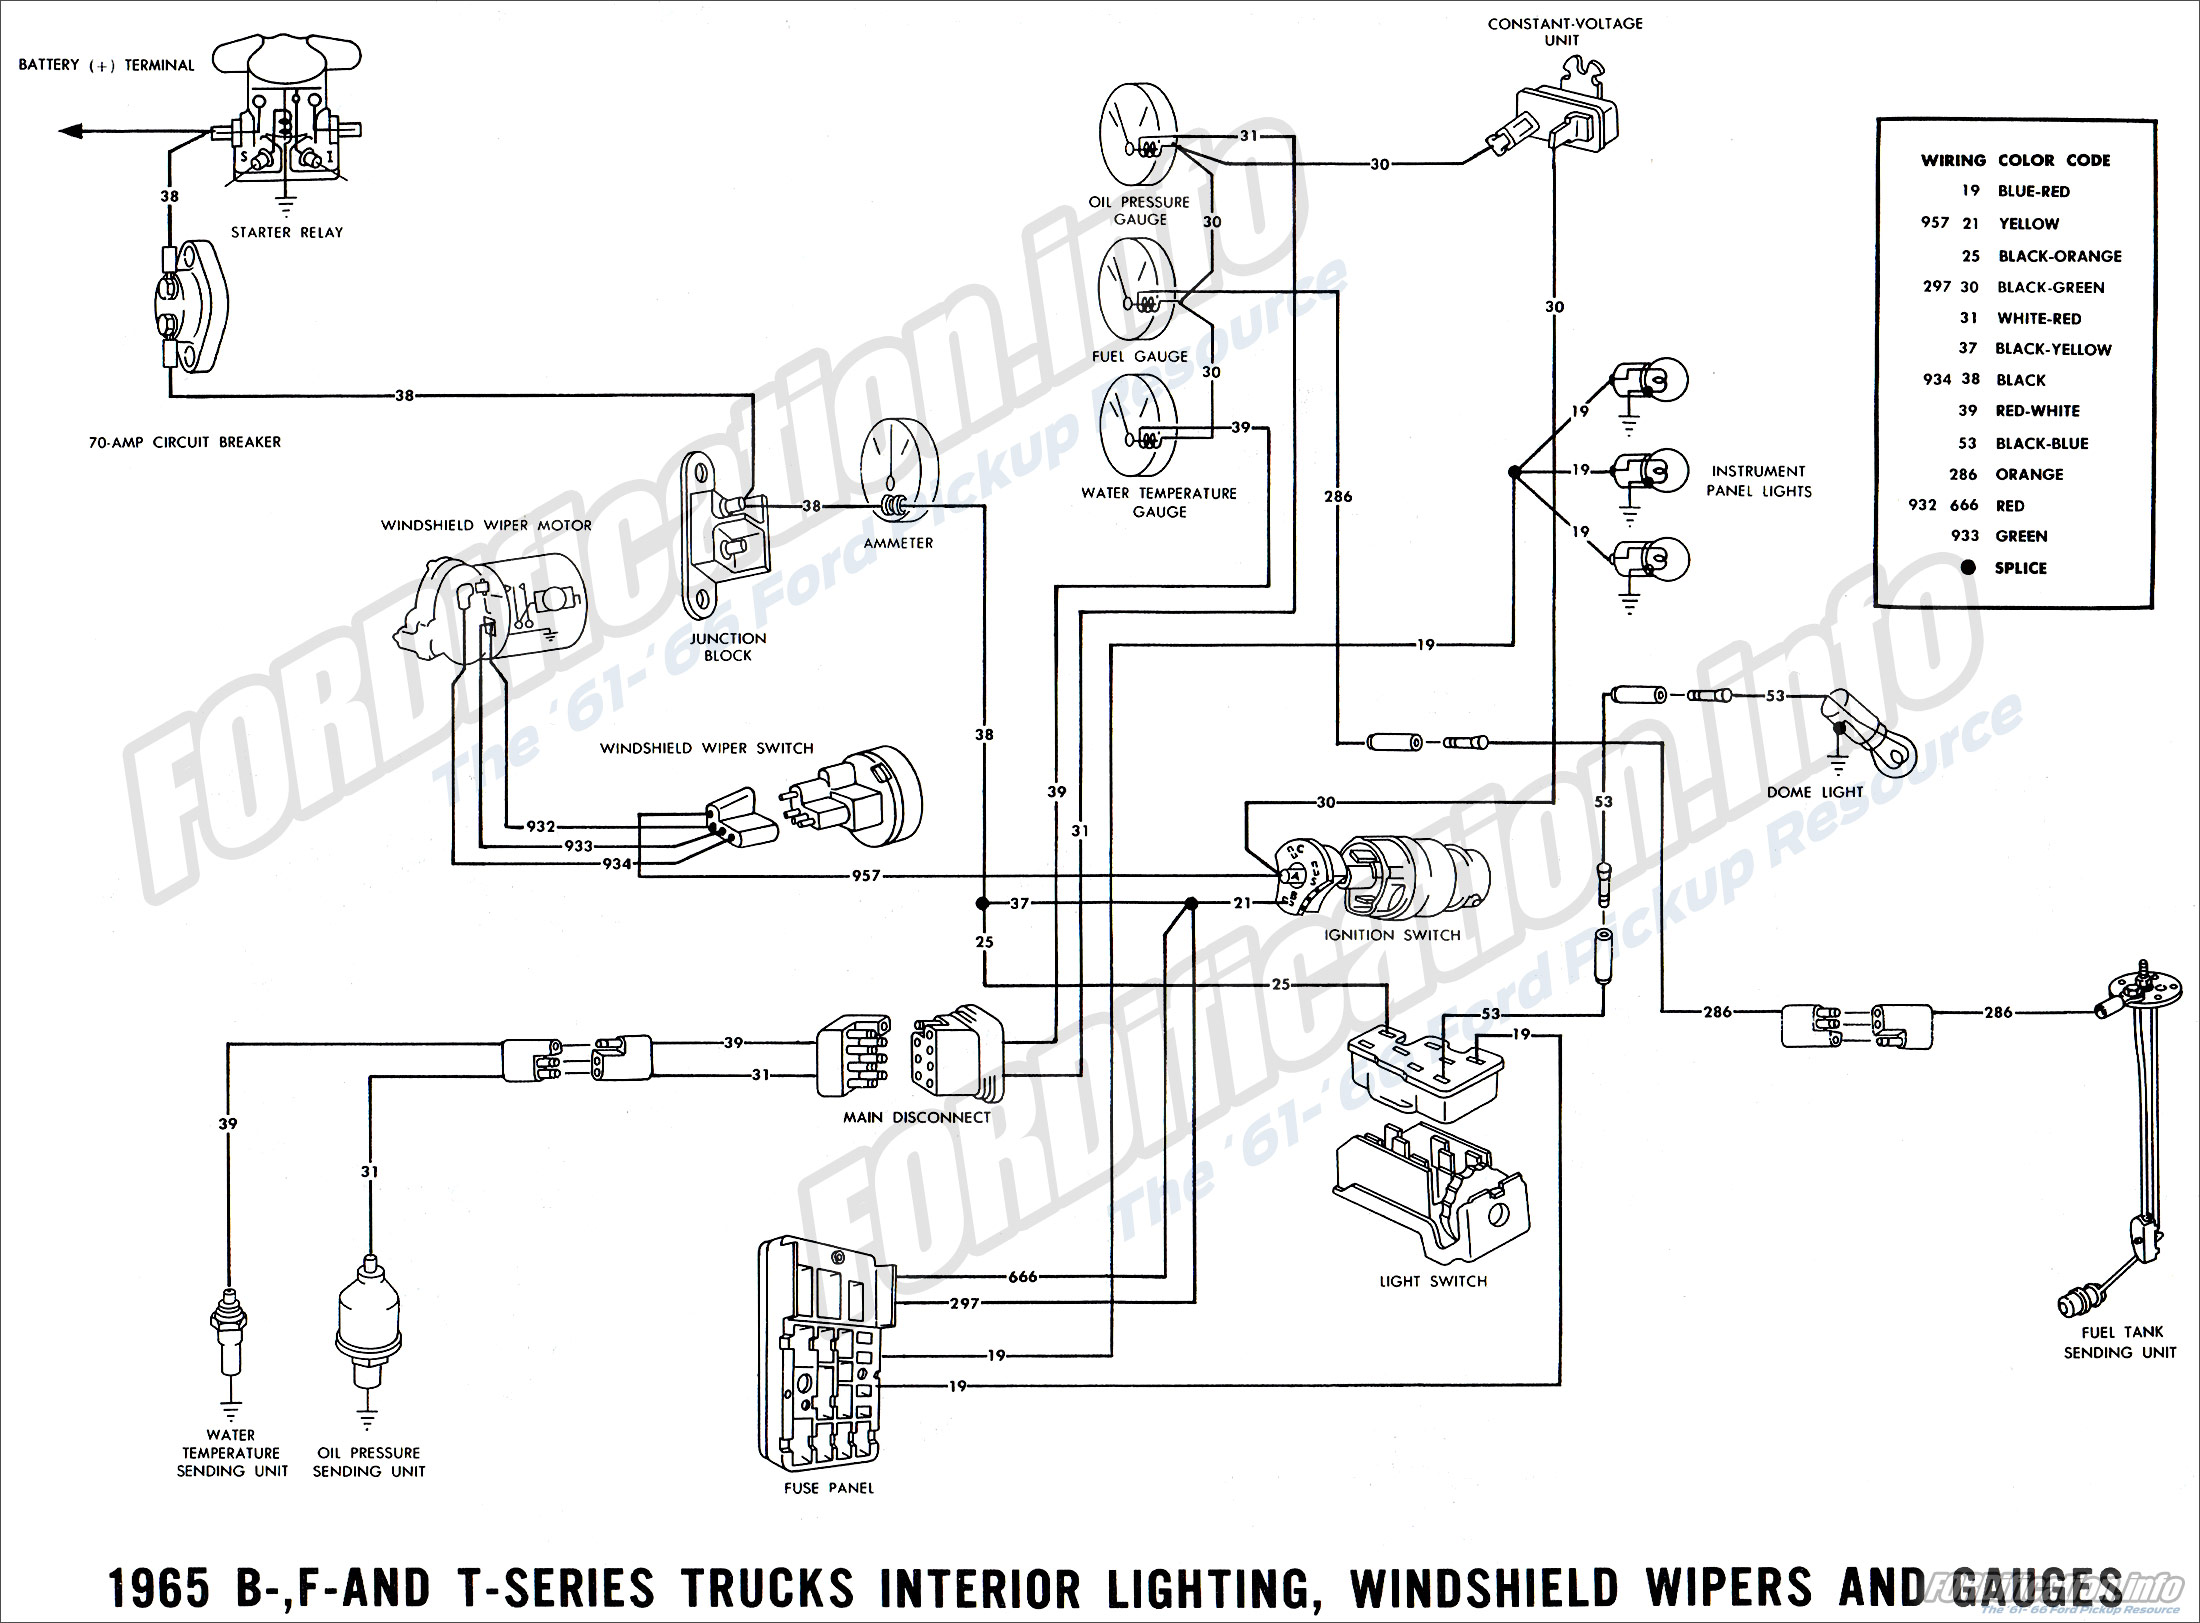 Ford Wiper Motor Wiring Diagram On Wiring Diagram For